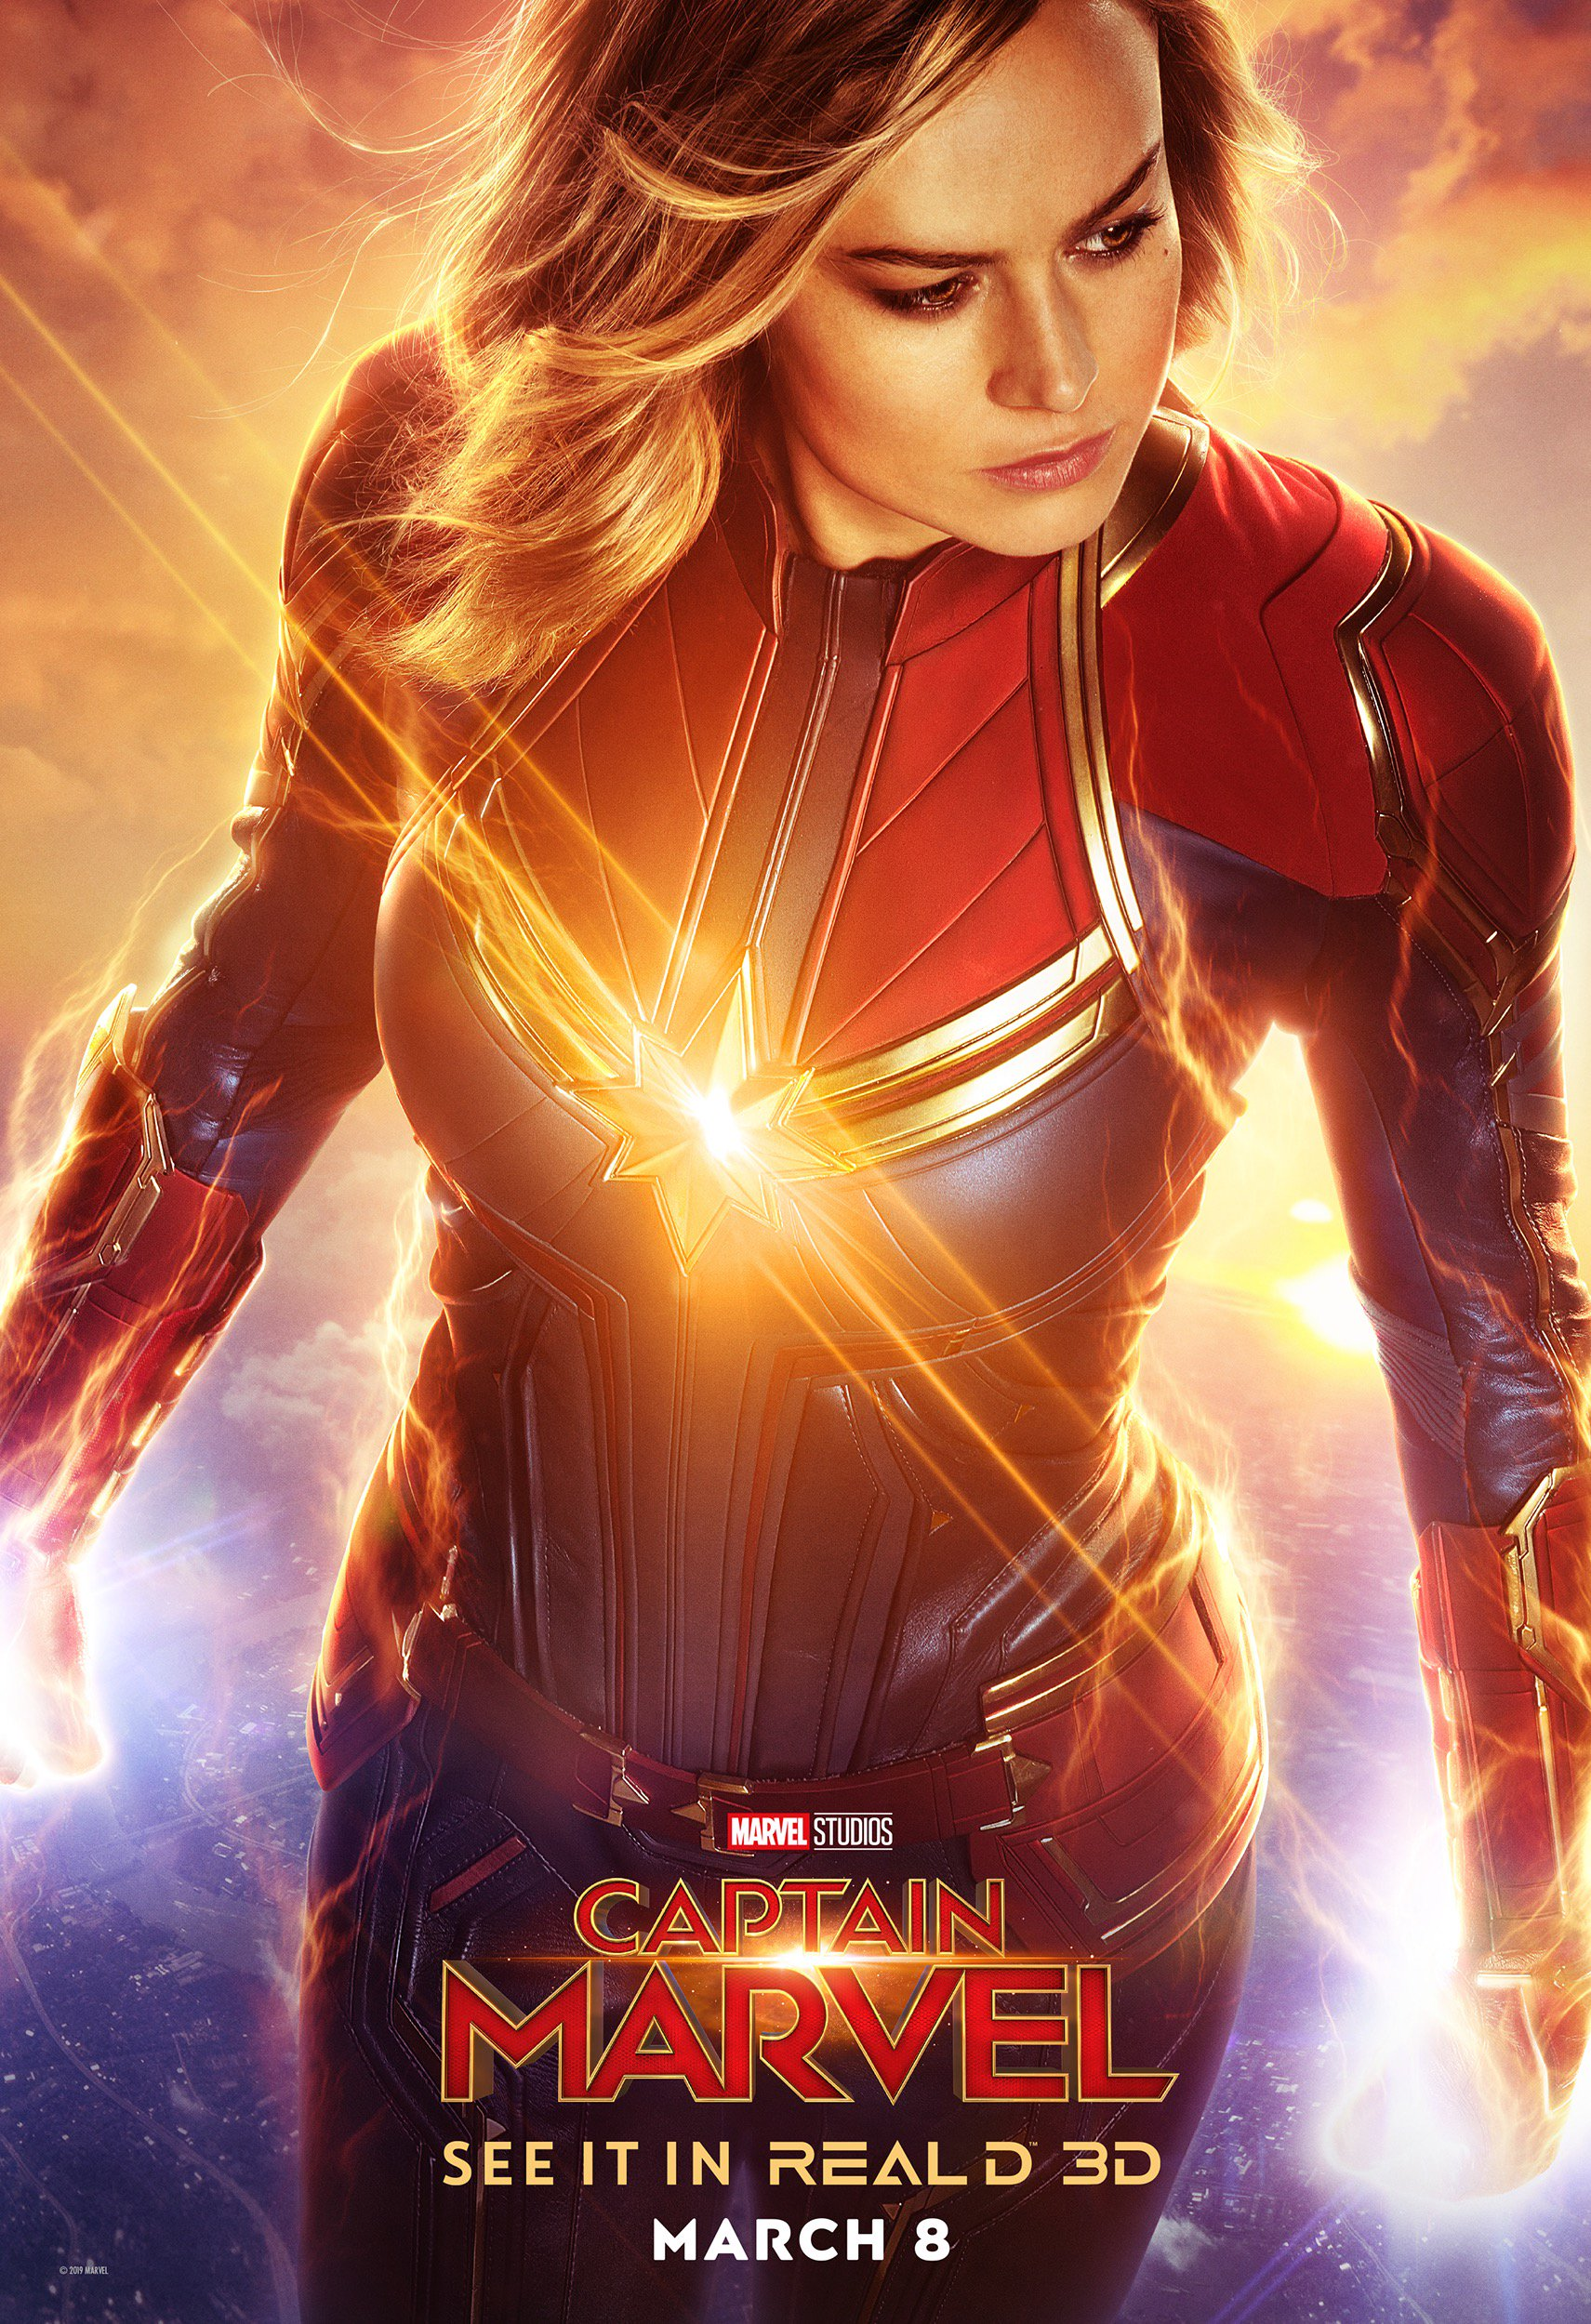 captain marvel' gets new posters from dolby cinema, imax, and reald